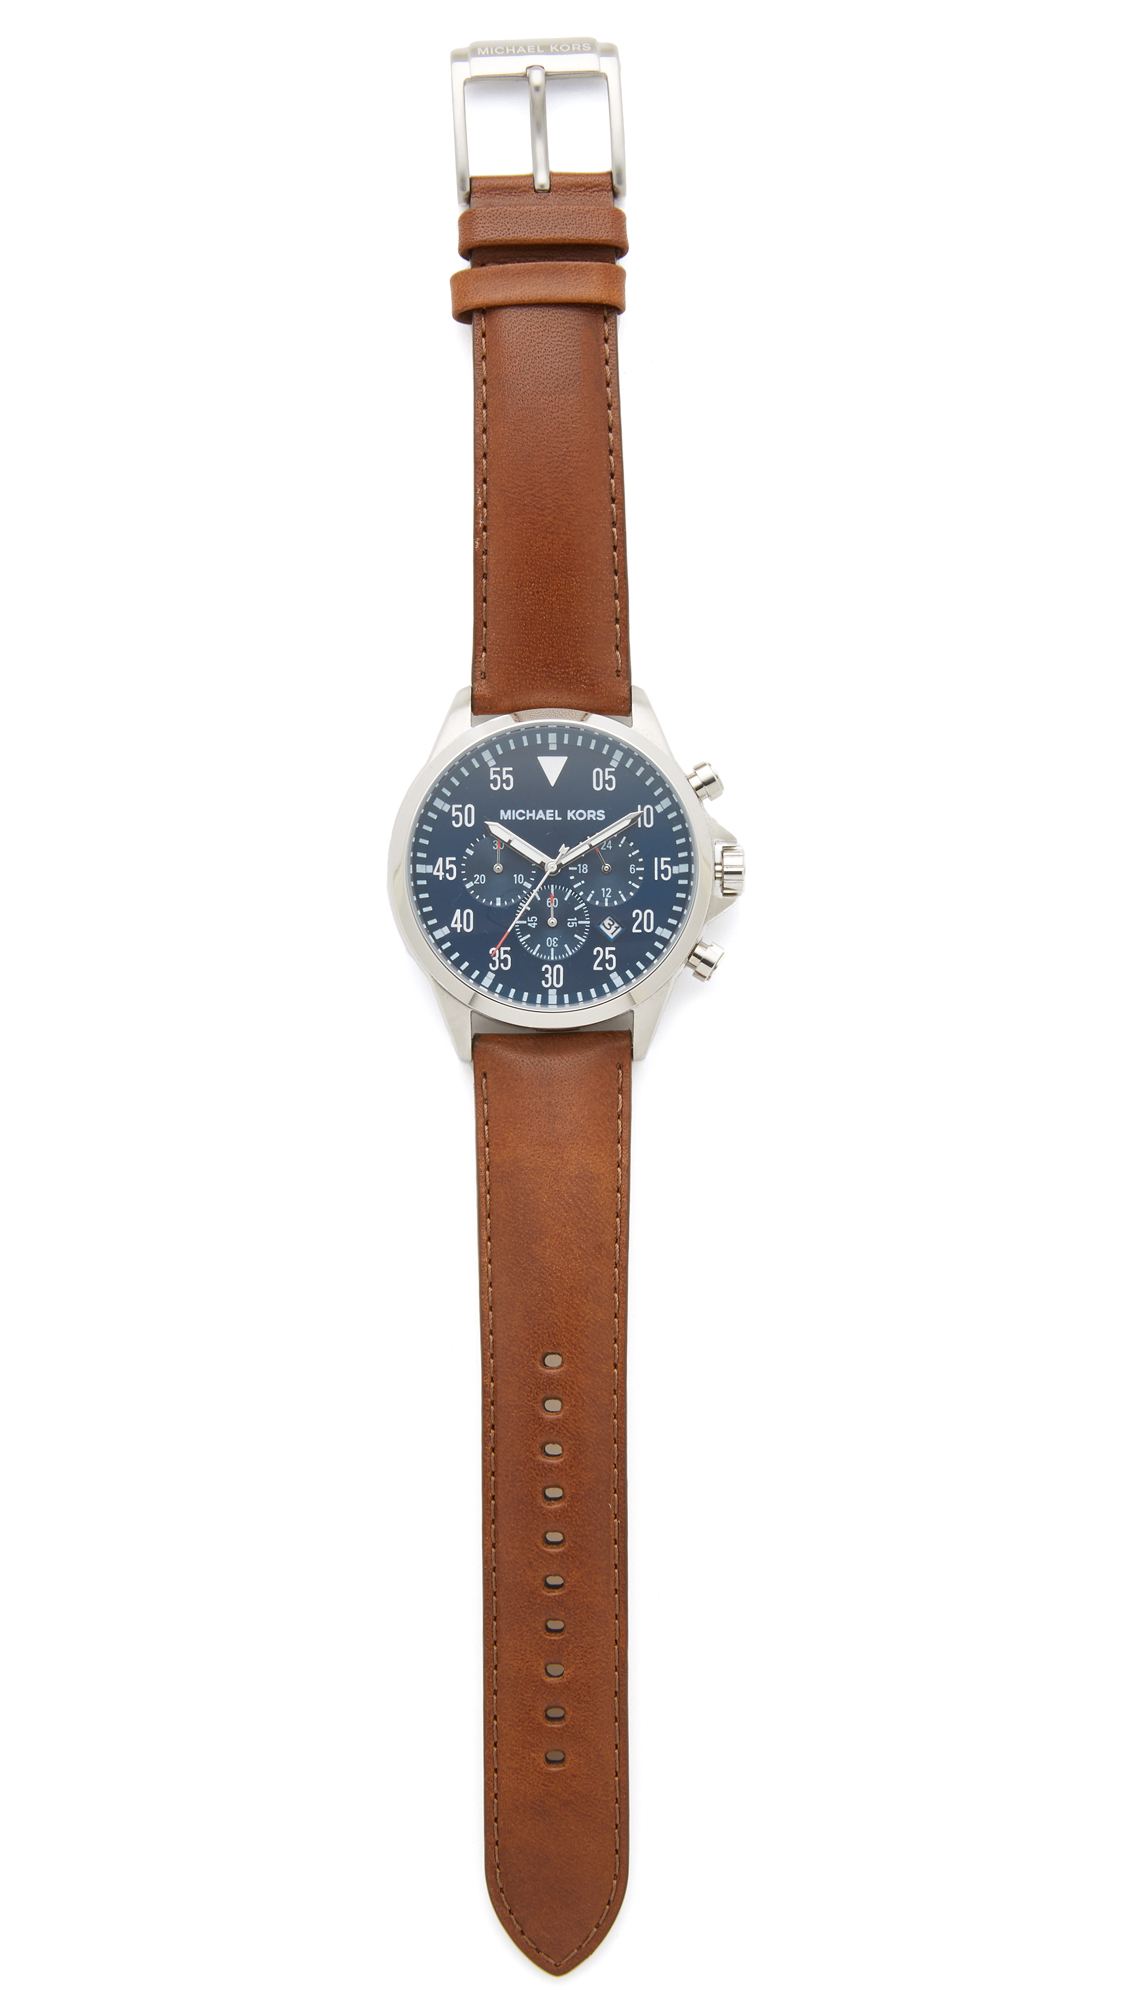 Michael kors gage chronograph watch in brown for men